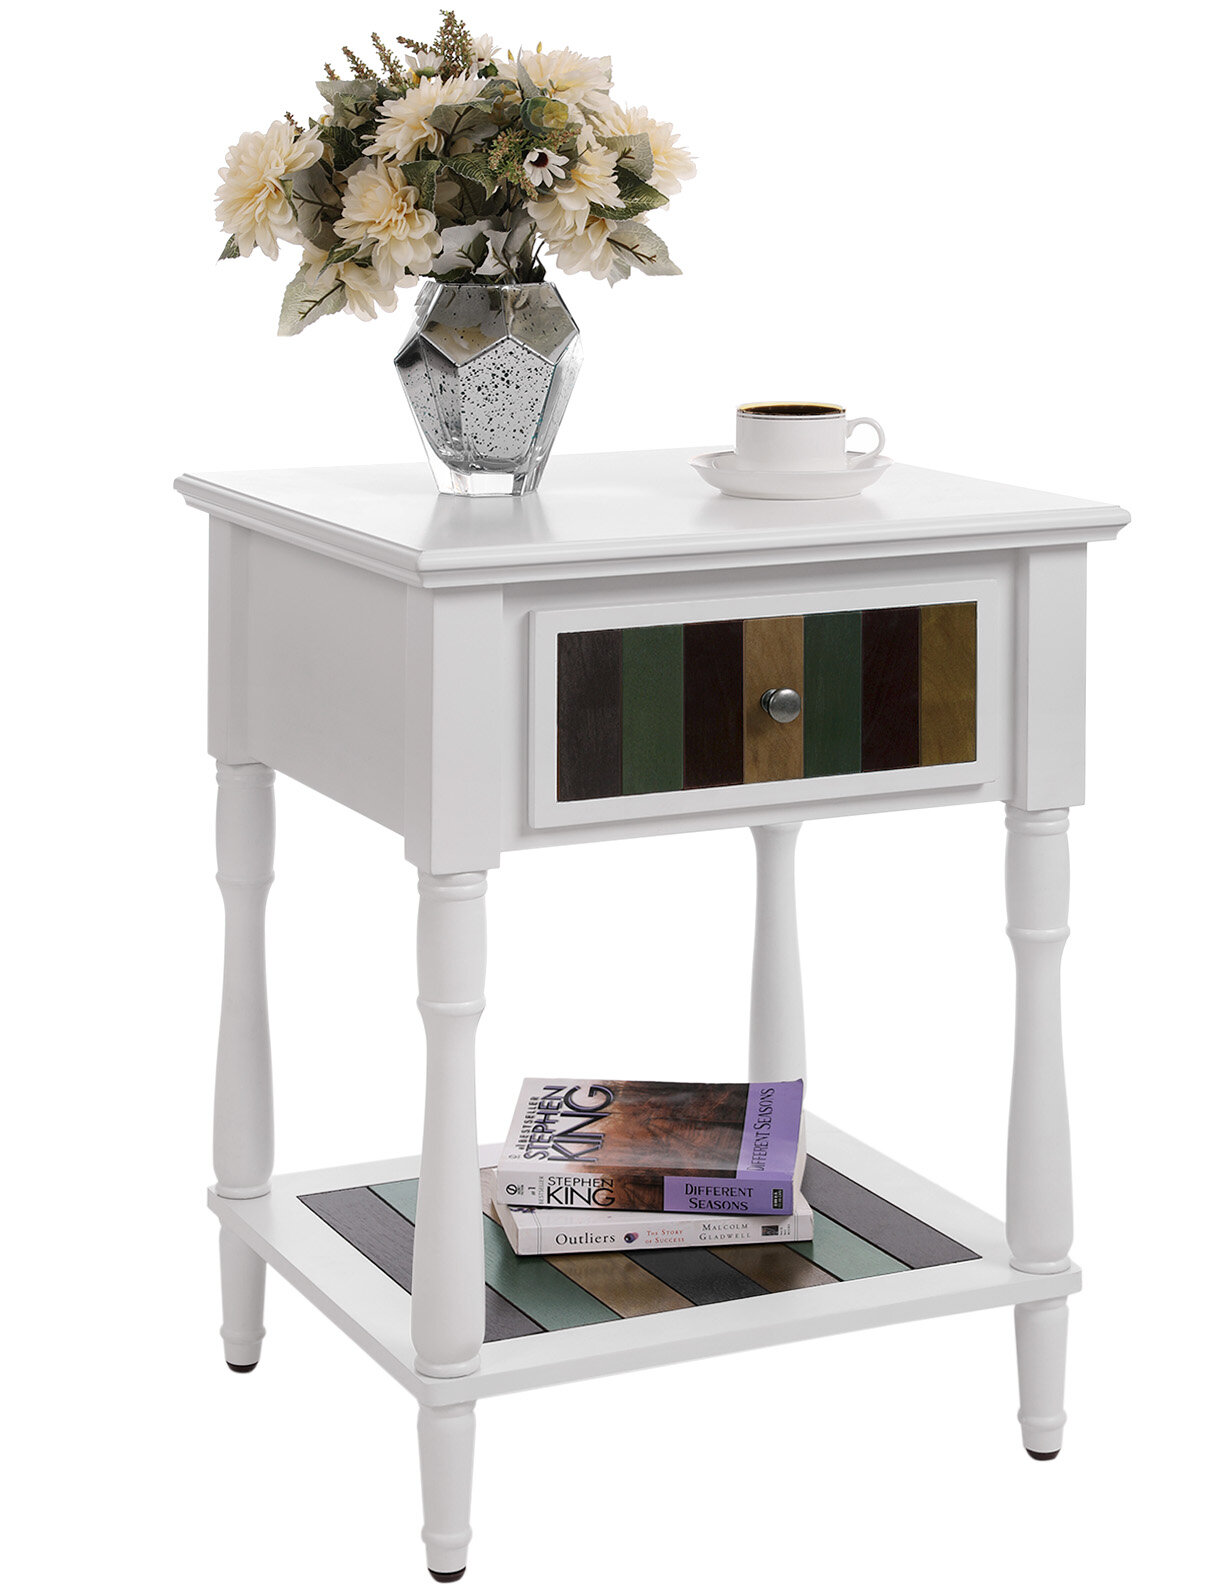 Nightstand Sofa Side End Table Bedside Table w// Drawer Shelf Wood Legs Home